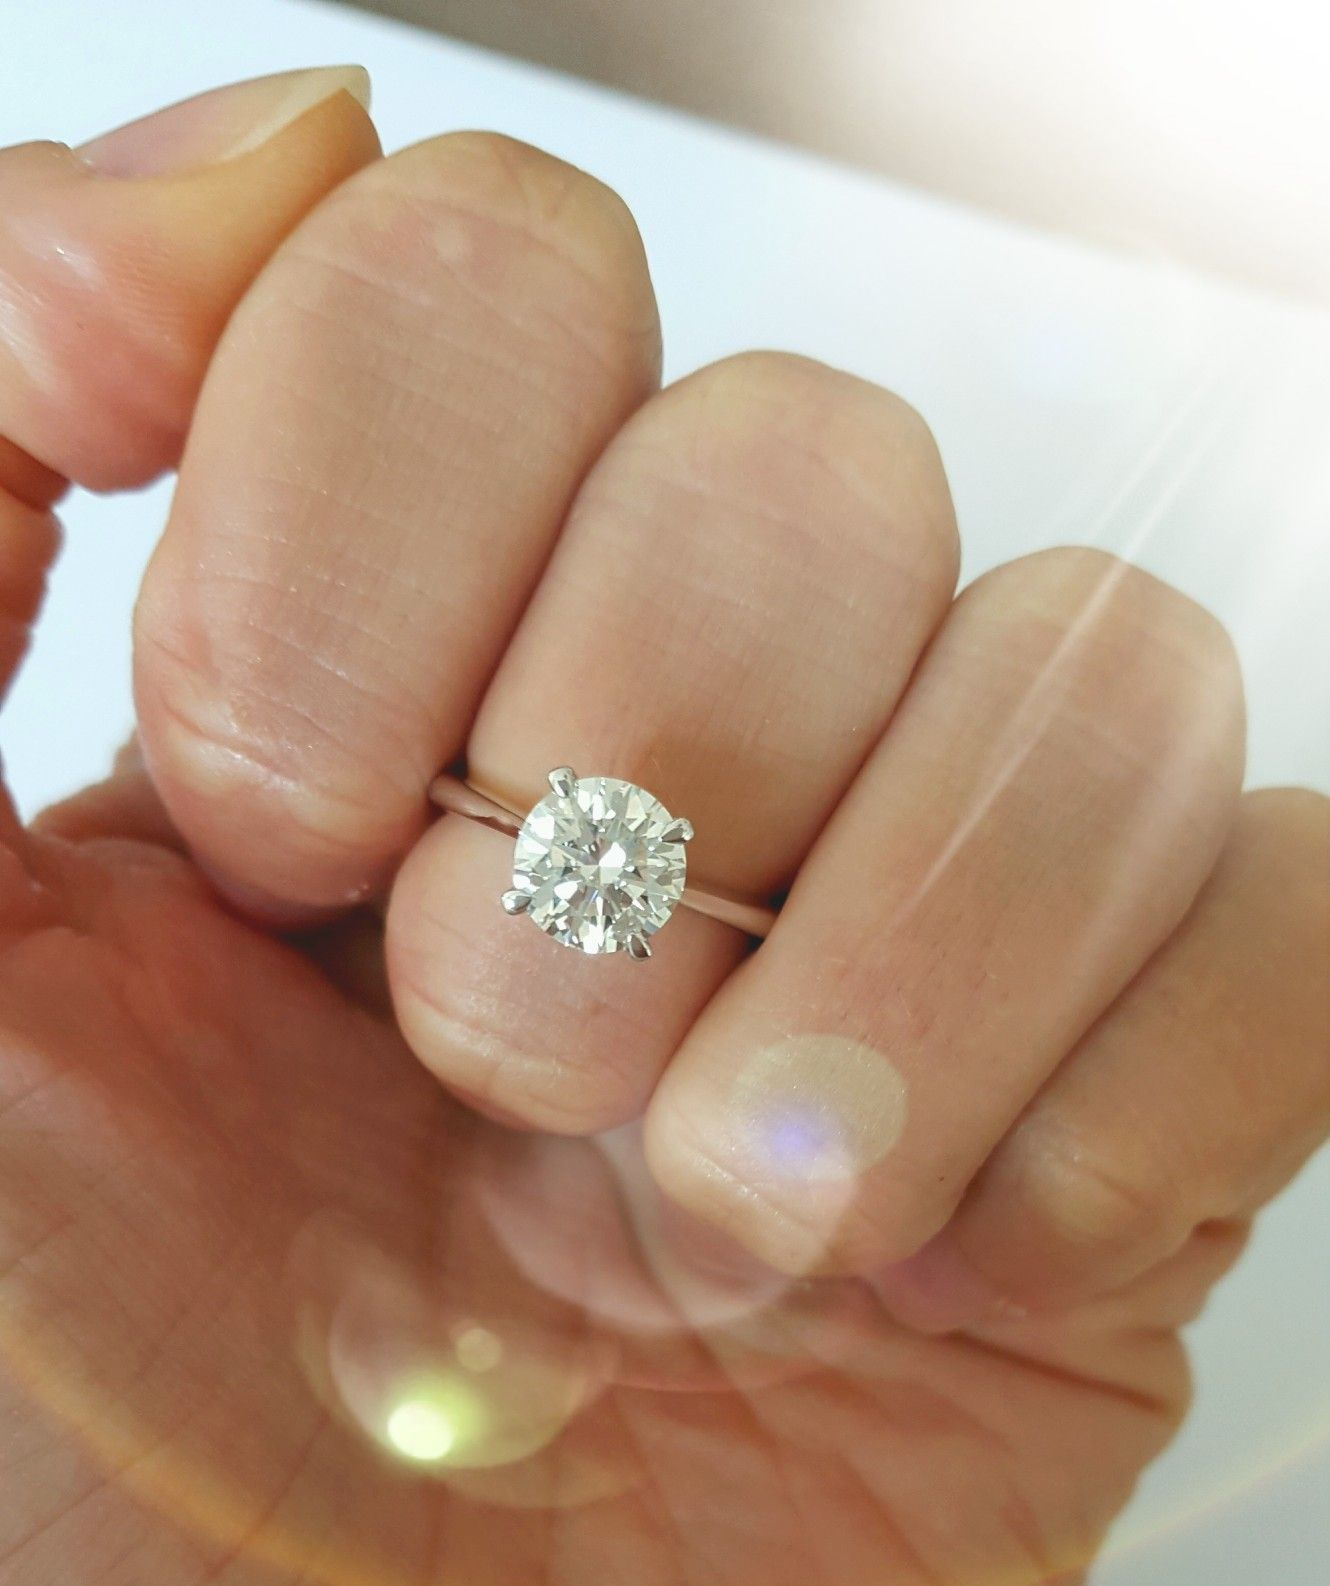 Stunning 1 1 Carat Solitaire Diamond Ring On Hand Solitaire Engagement Ring Diamond Solitaire Rings Diamond